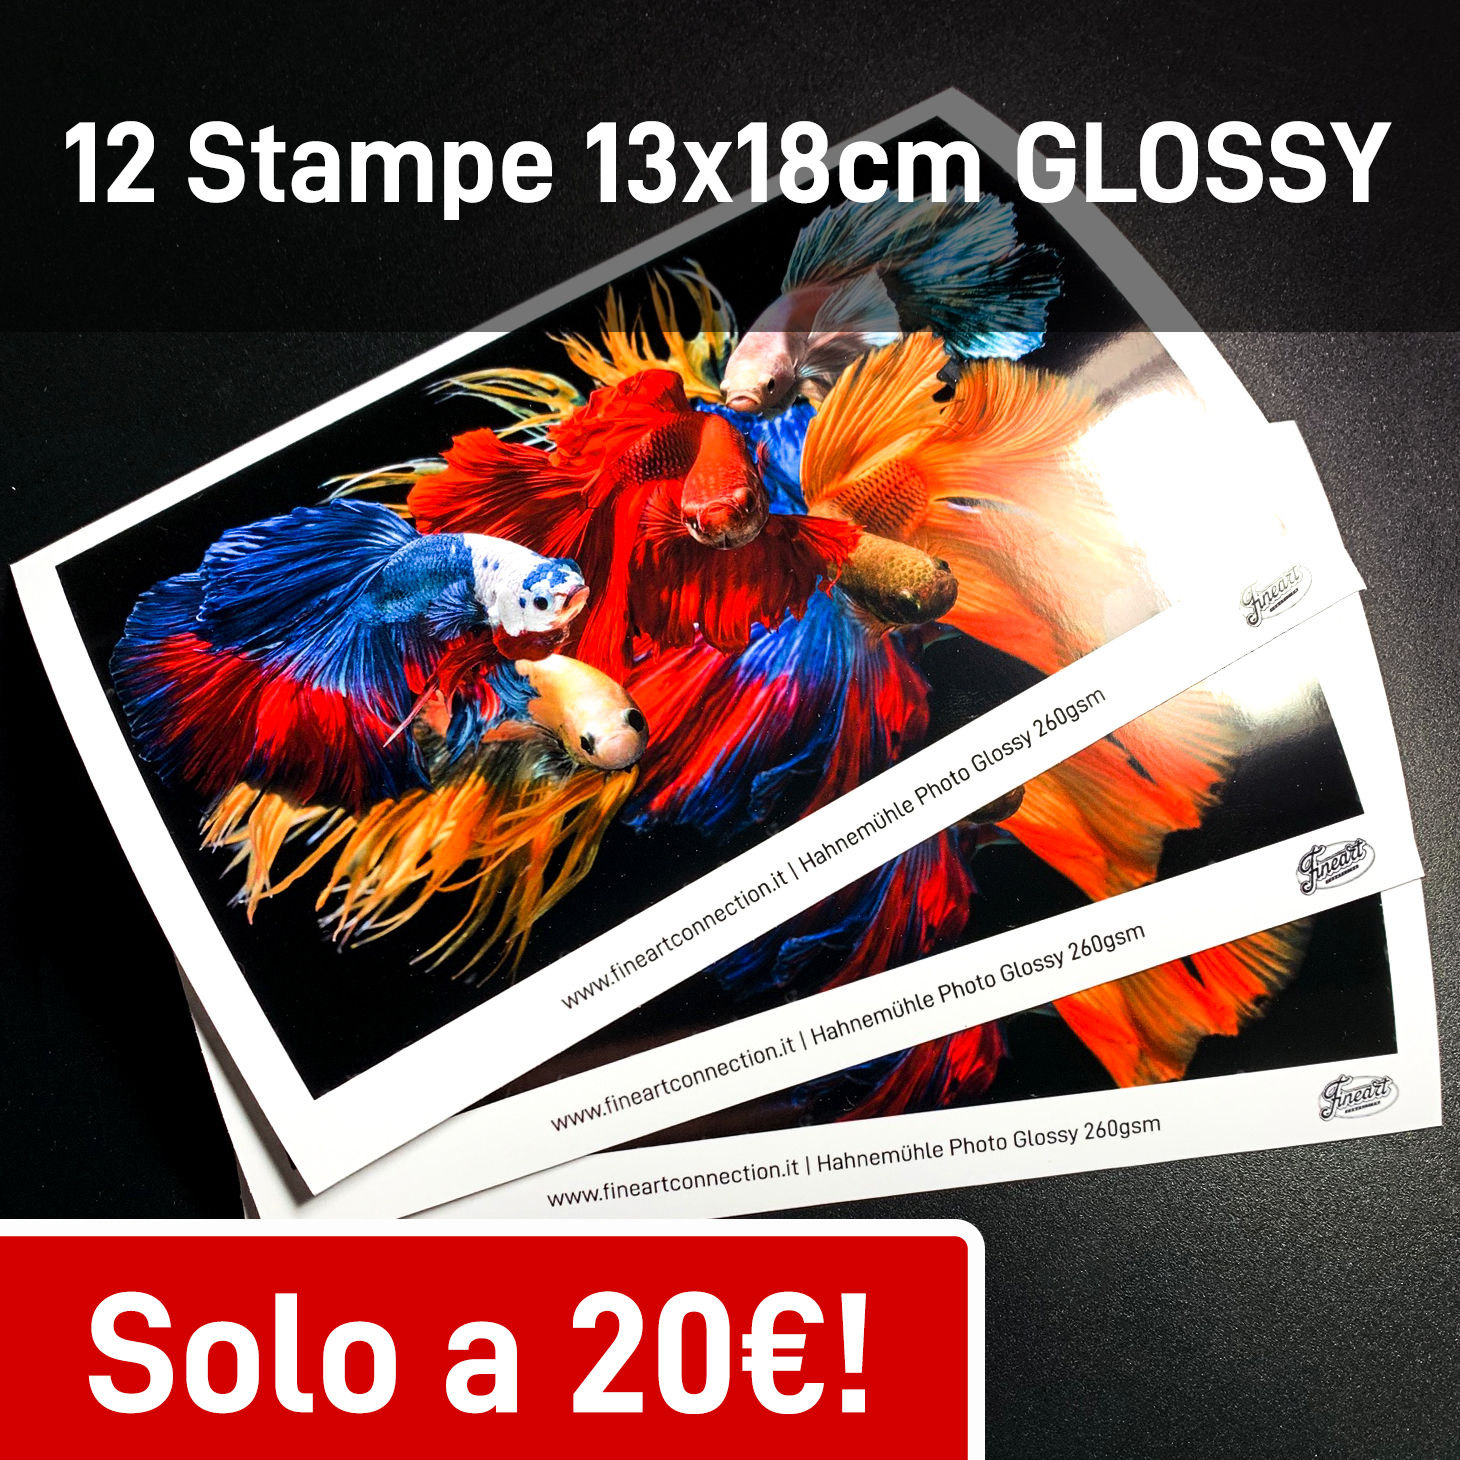 12 stampe 13x18cm Hahnemuhle Glossy 260gsm